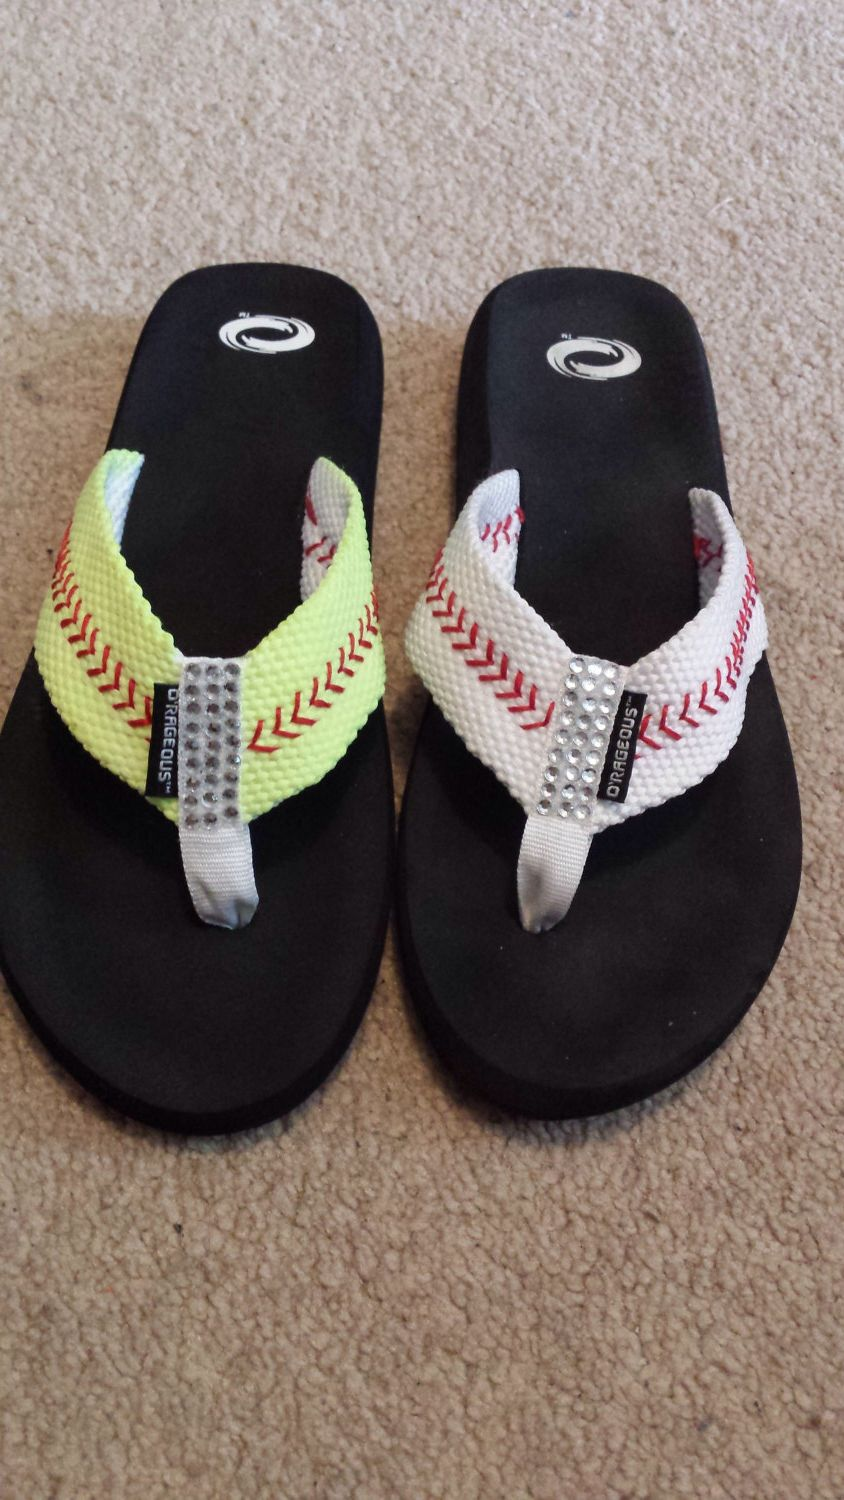 Flip flops stitched to look like baseball or softball. This picture is one of each so you may choose which you prefer by JumbleJoJo on Etsy https://www.etsy.com/listing/203381957/flip-flops-stitched-to-look-like